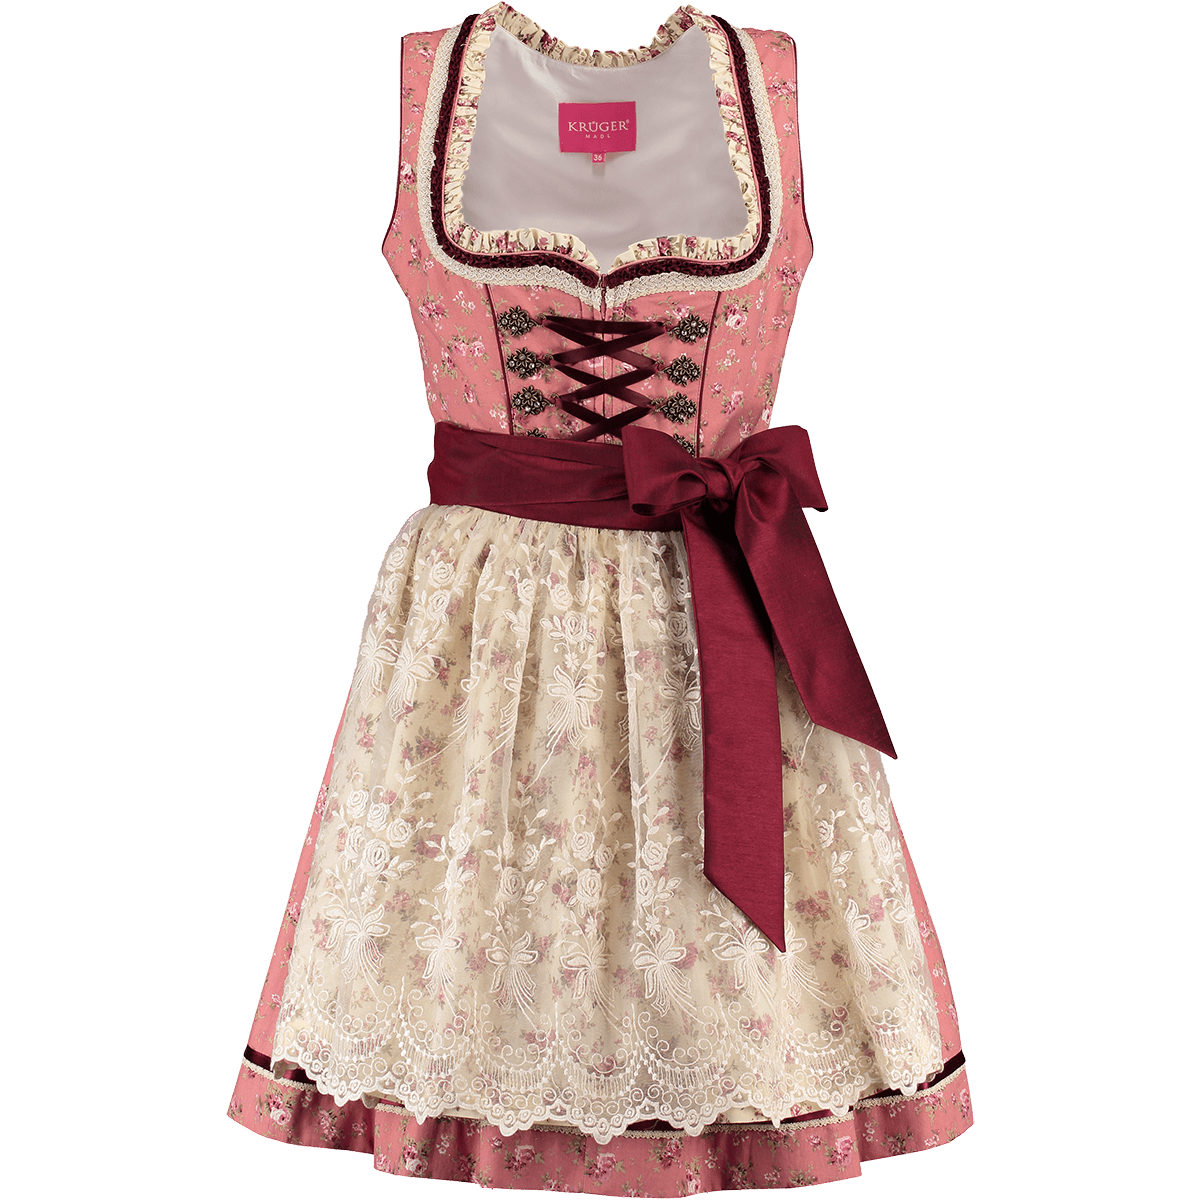 kr ger dirndl mini dirndl valencia rosa creme g nstig kaufen. Black Bedroom Furniture Sets. Home Design Ideas